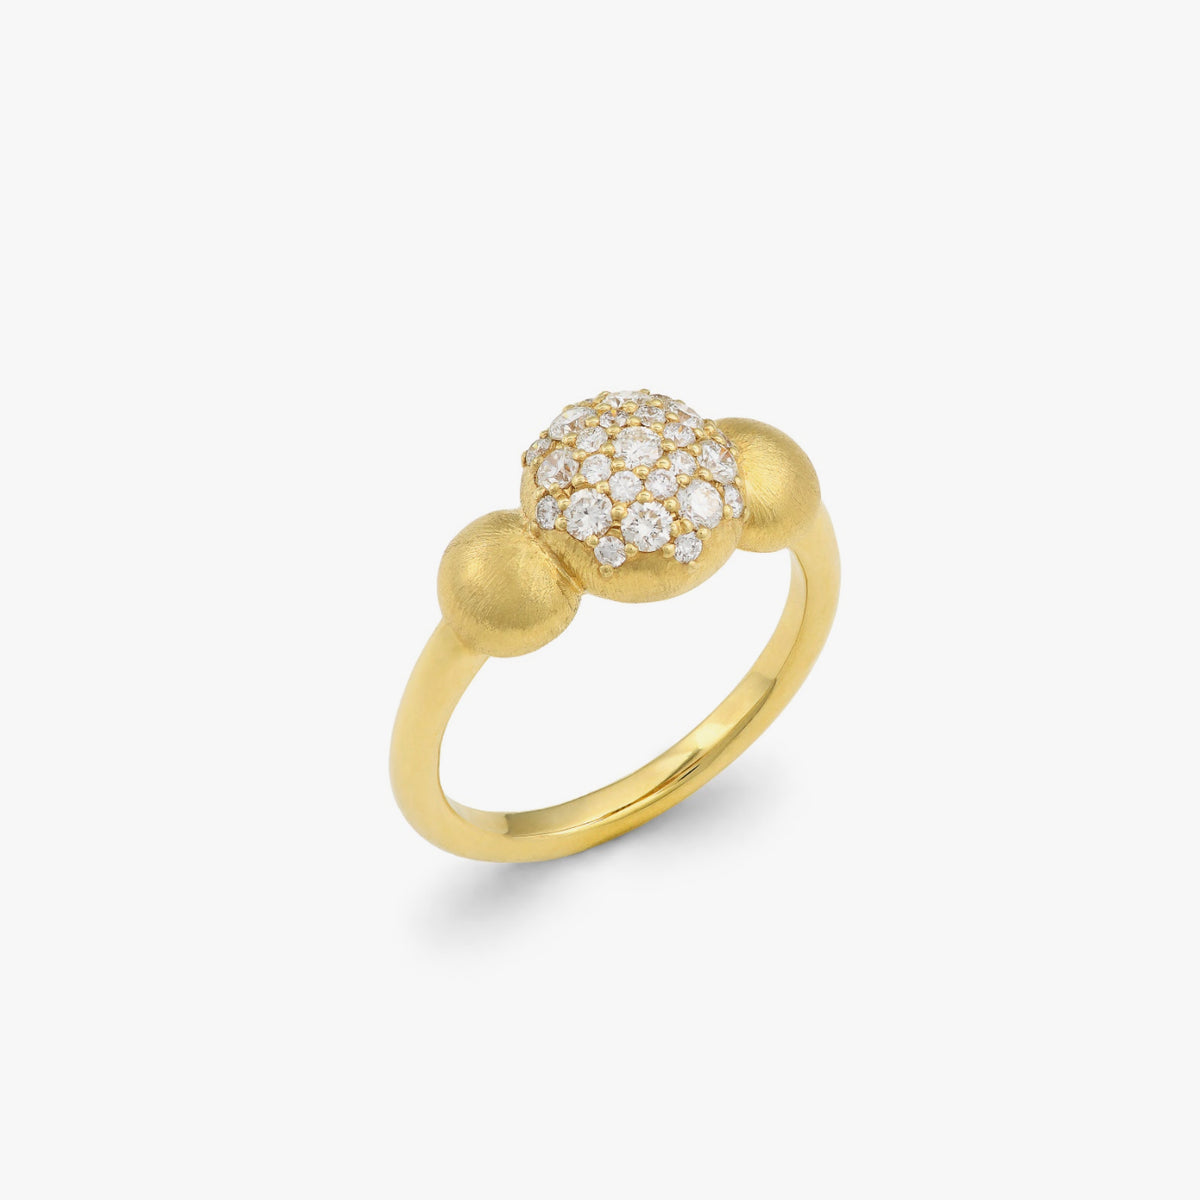 Small Constellation Ring with Diamonds